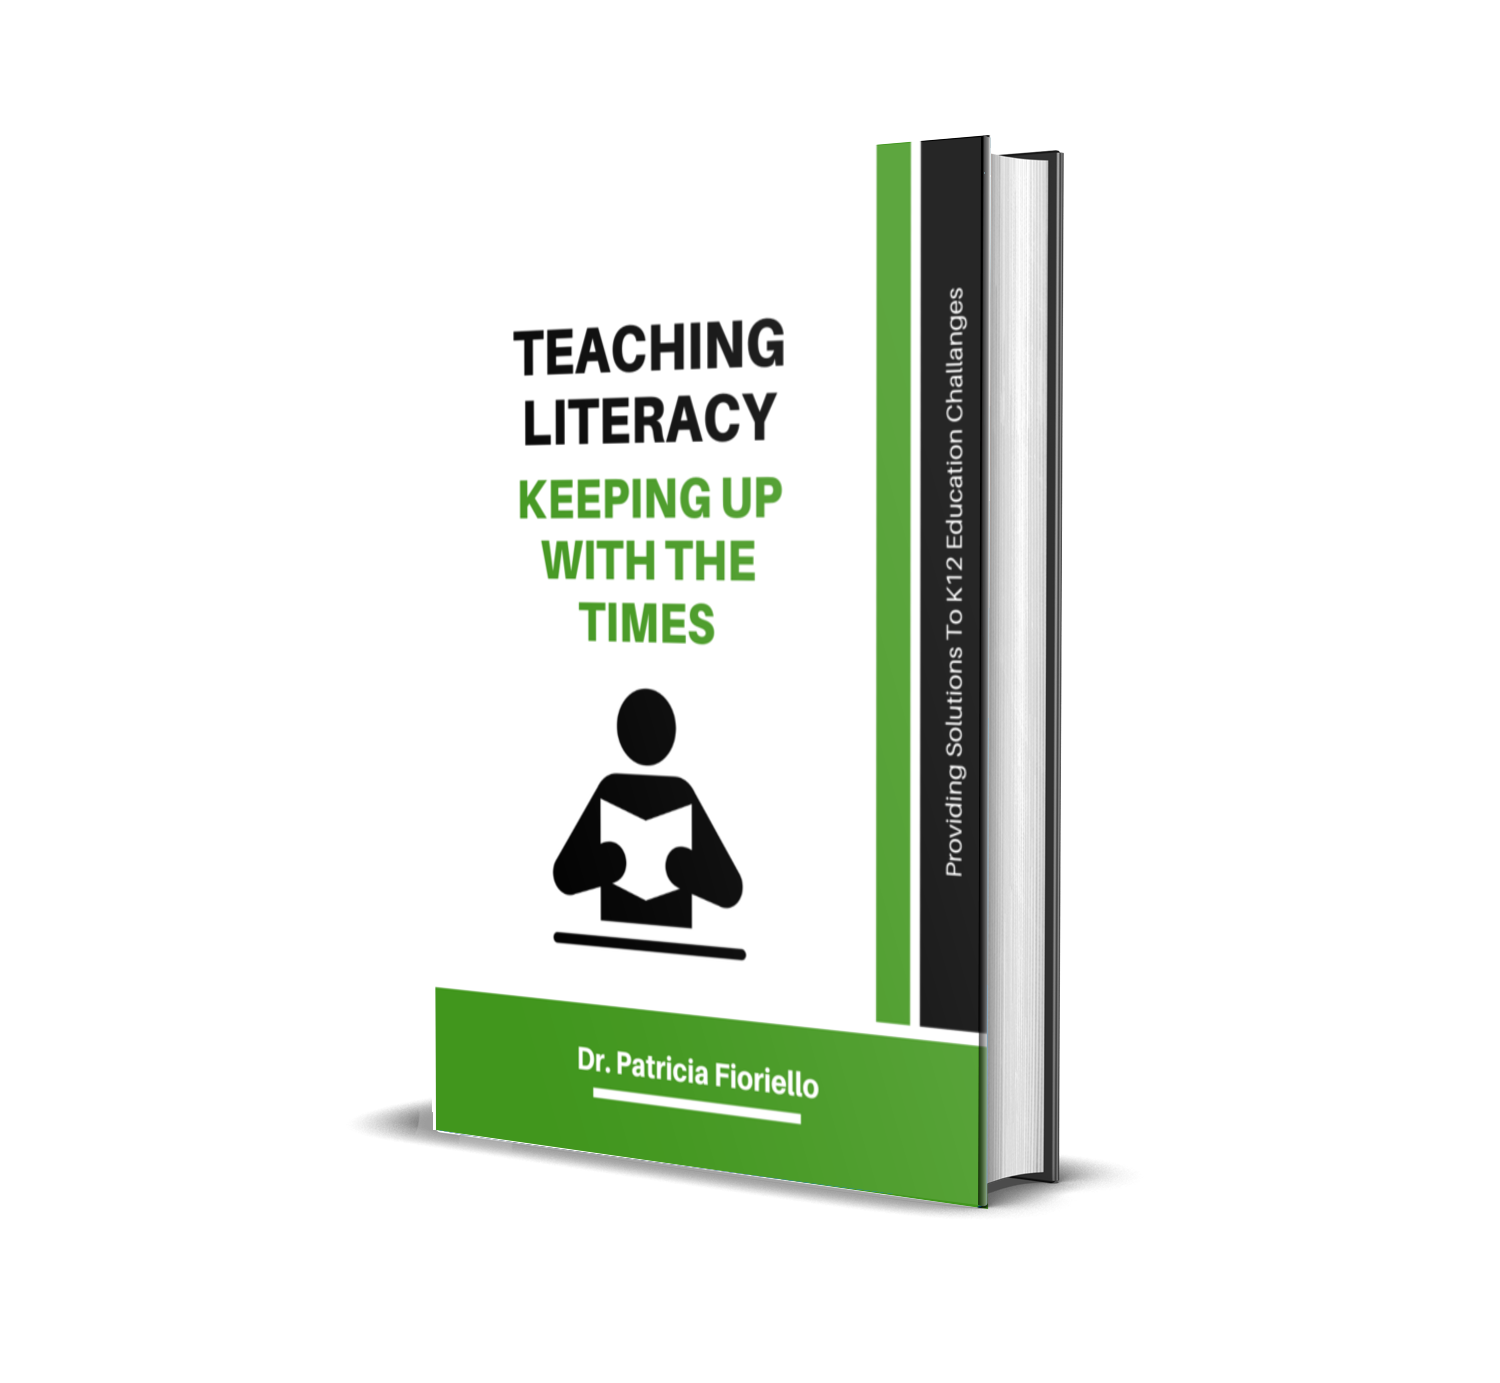 Teaching Literacy - Keeping Up With The Times